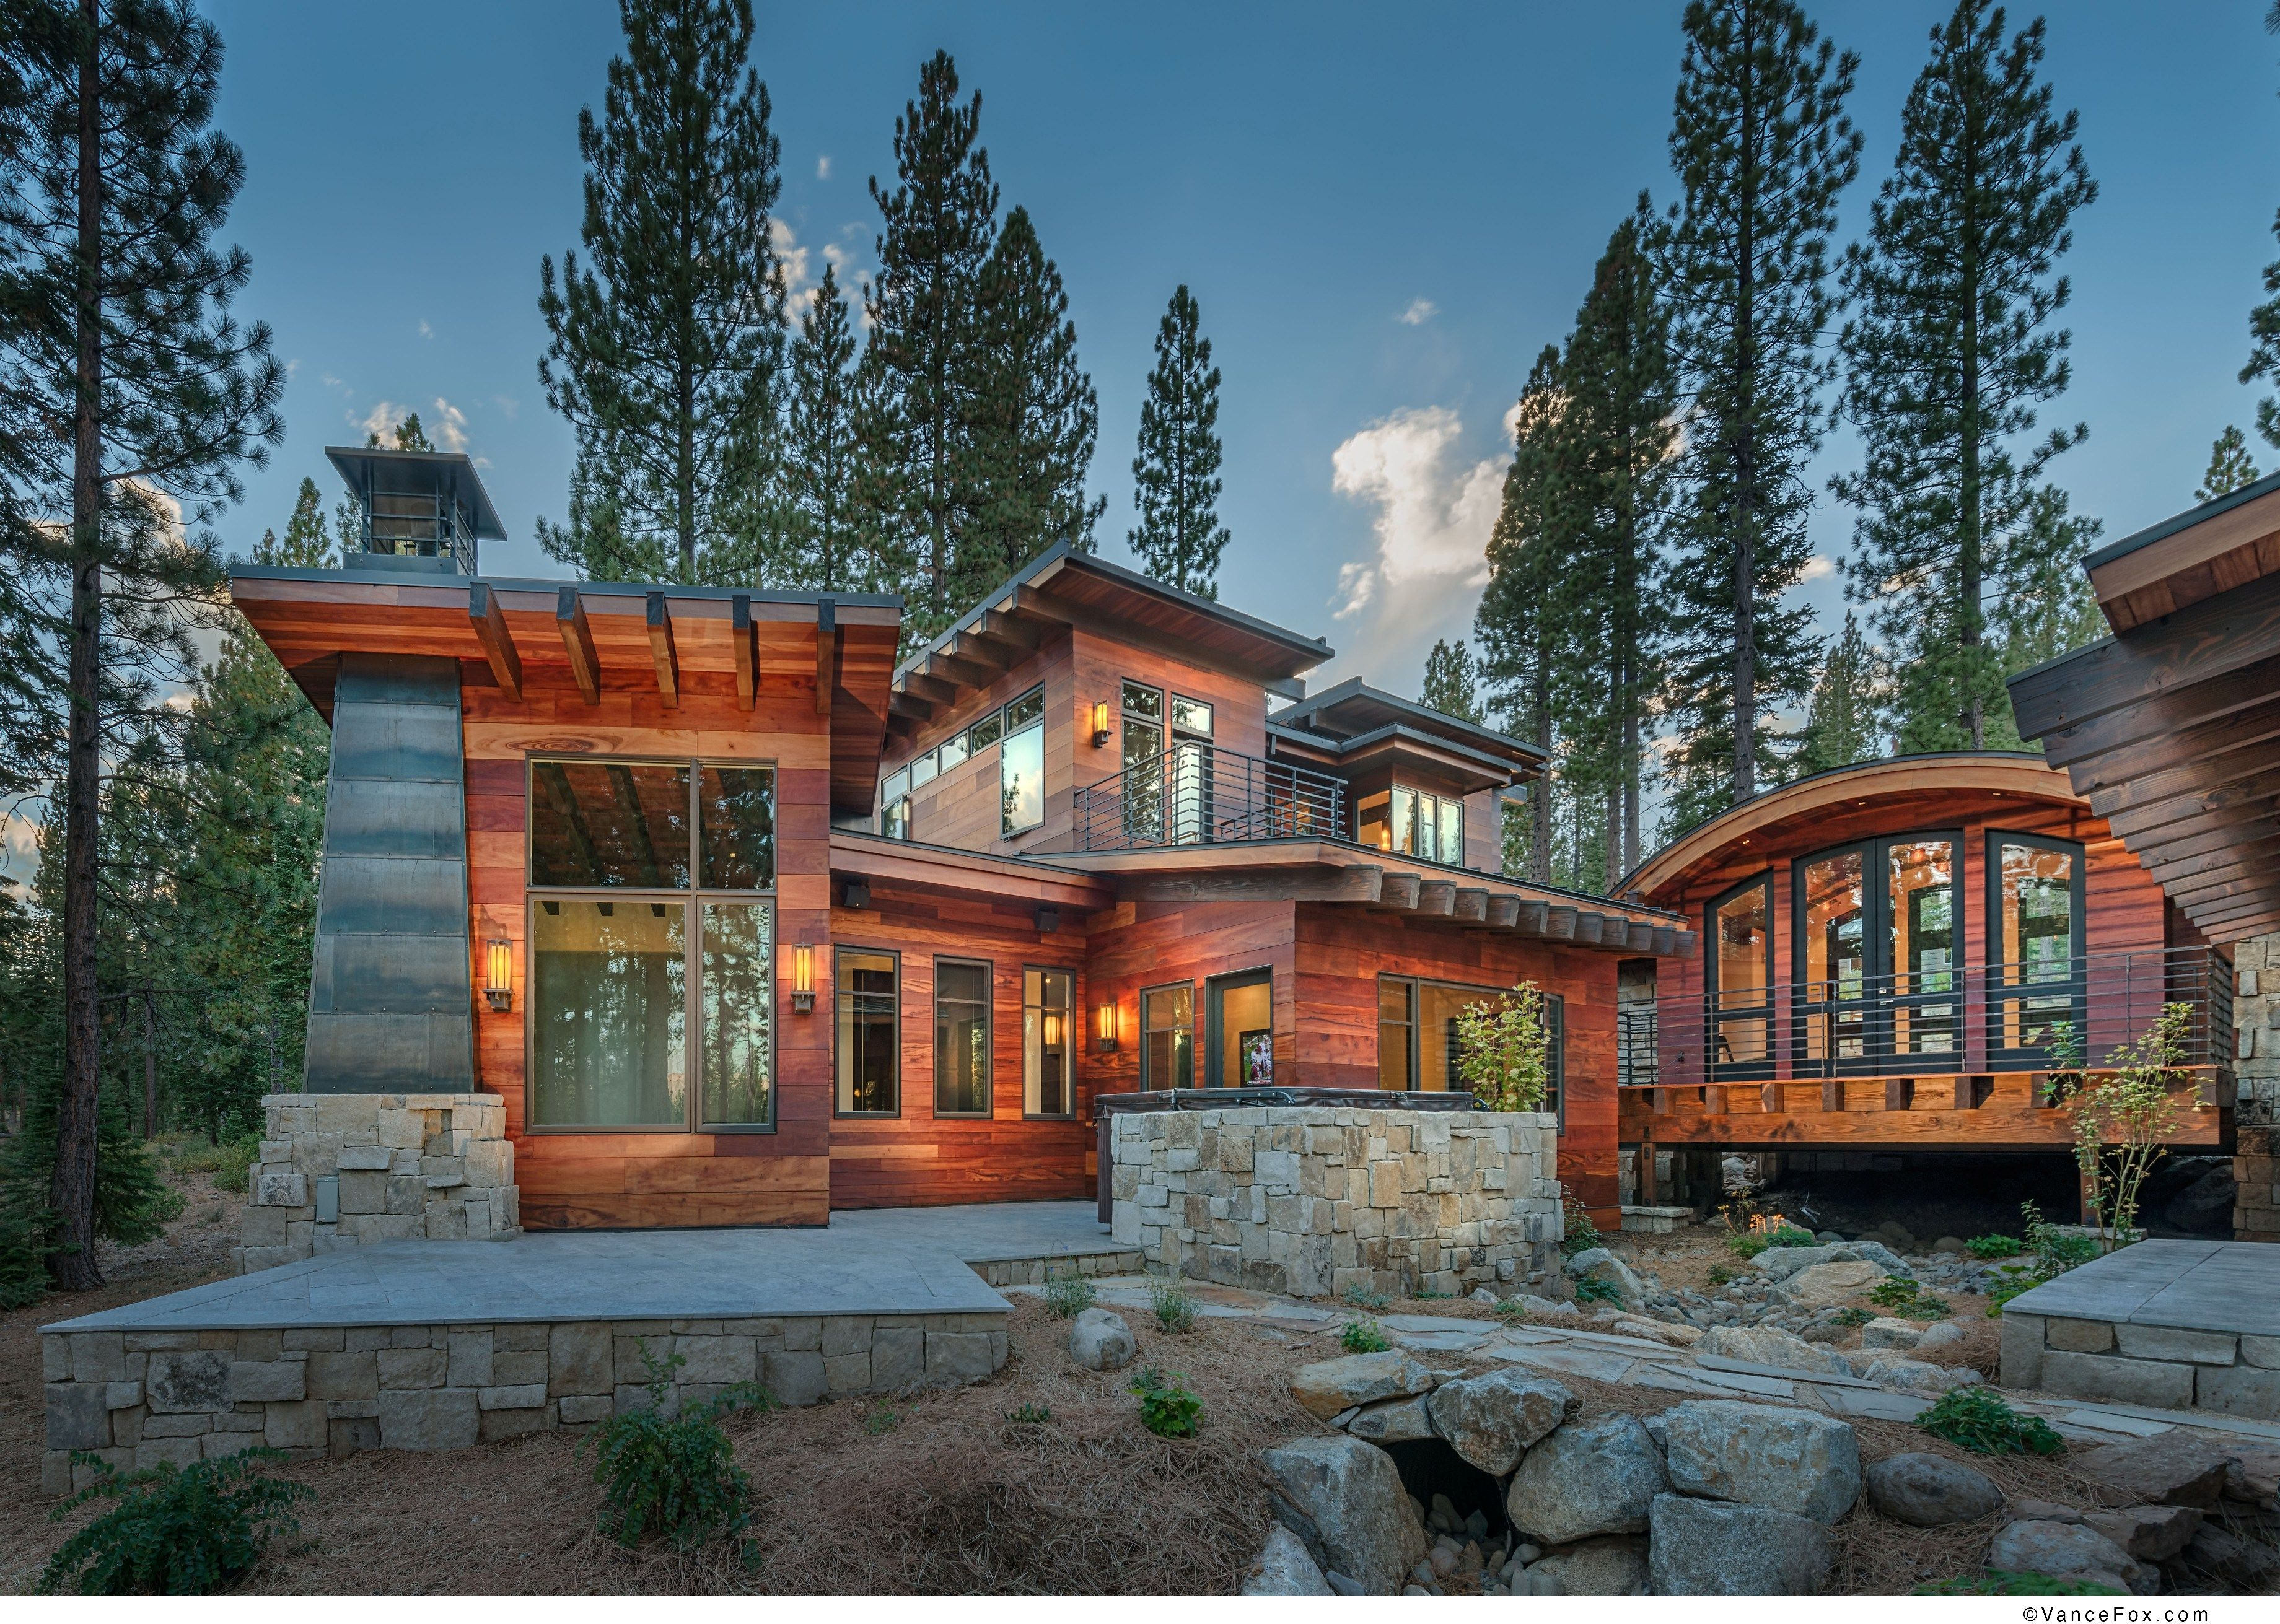 Cabin With Tigerwood Siding In Truckee, CA. Built By NSM